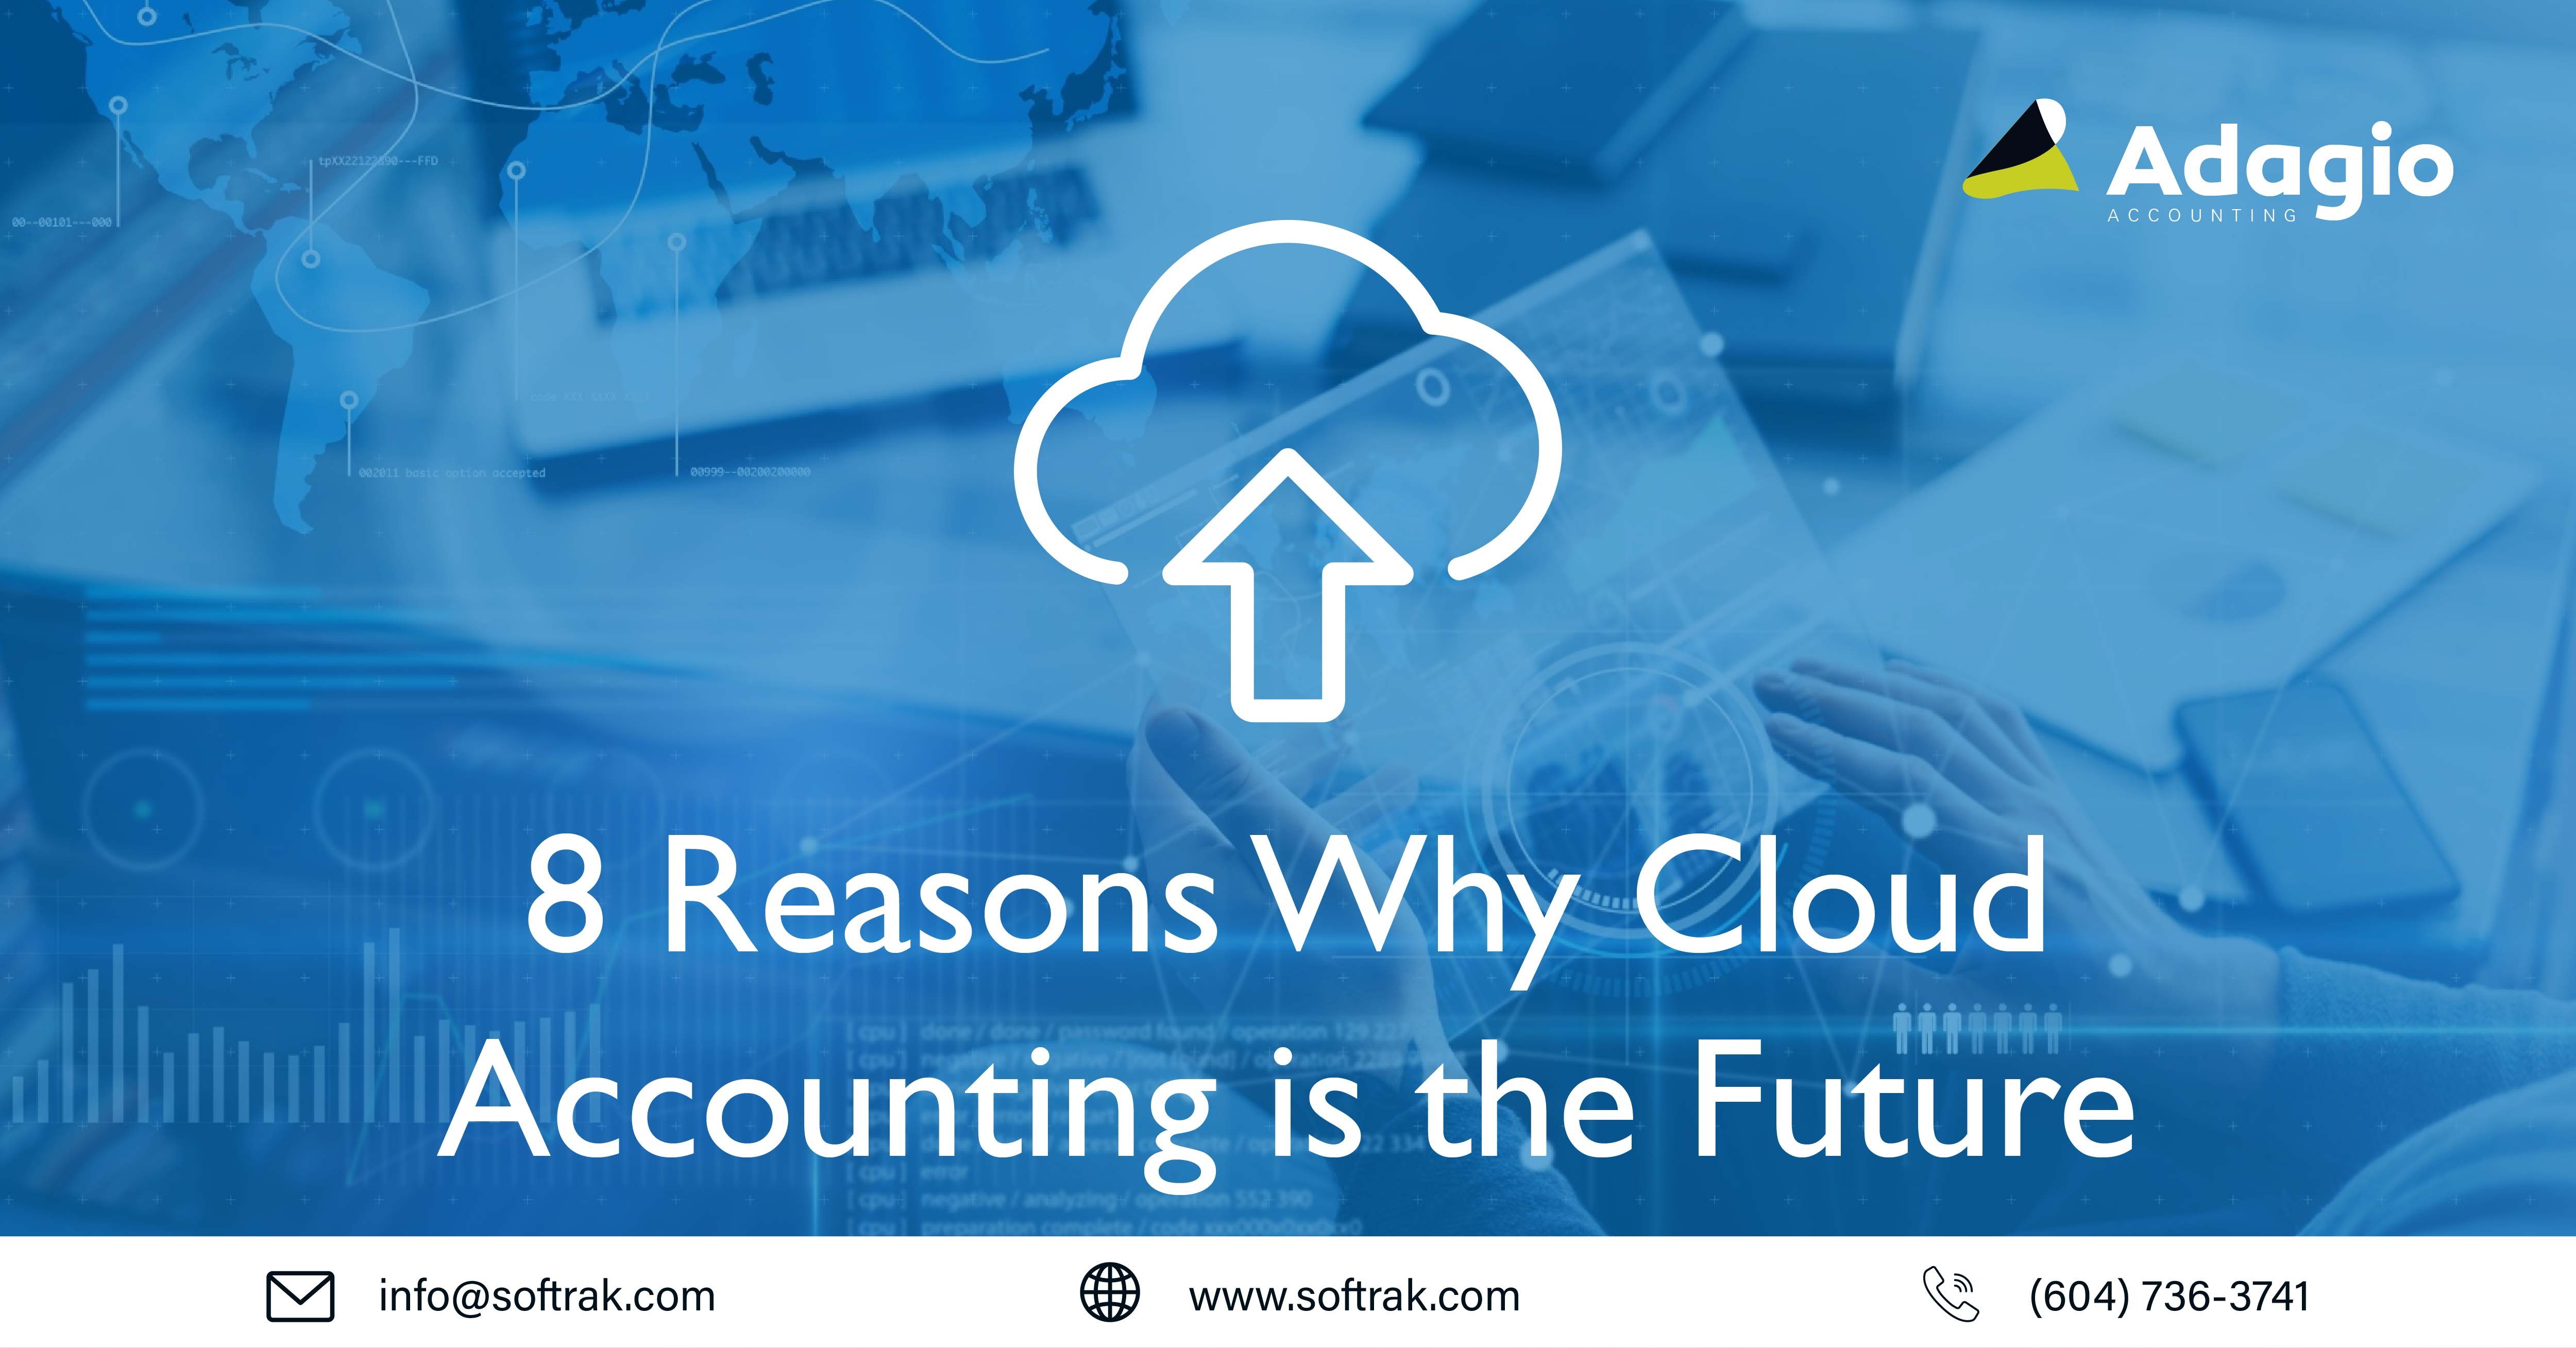 BLOG_STS_8 Reasons Why Cloud Accounting is the Future-01